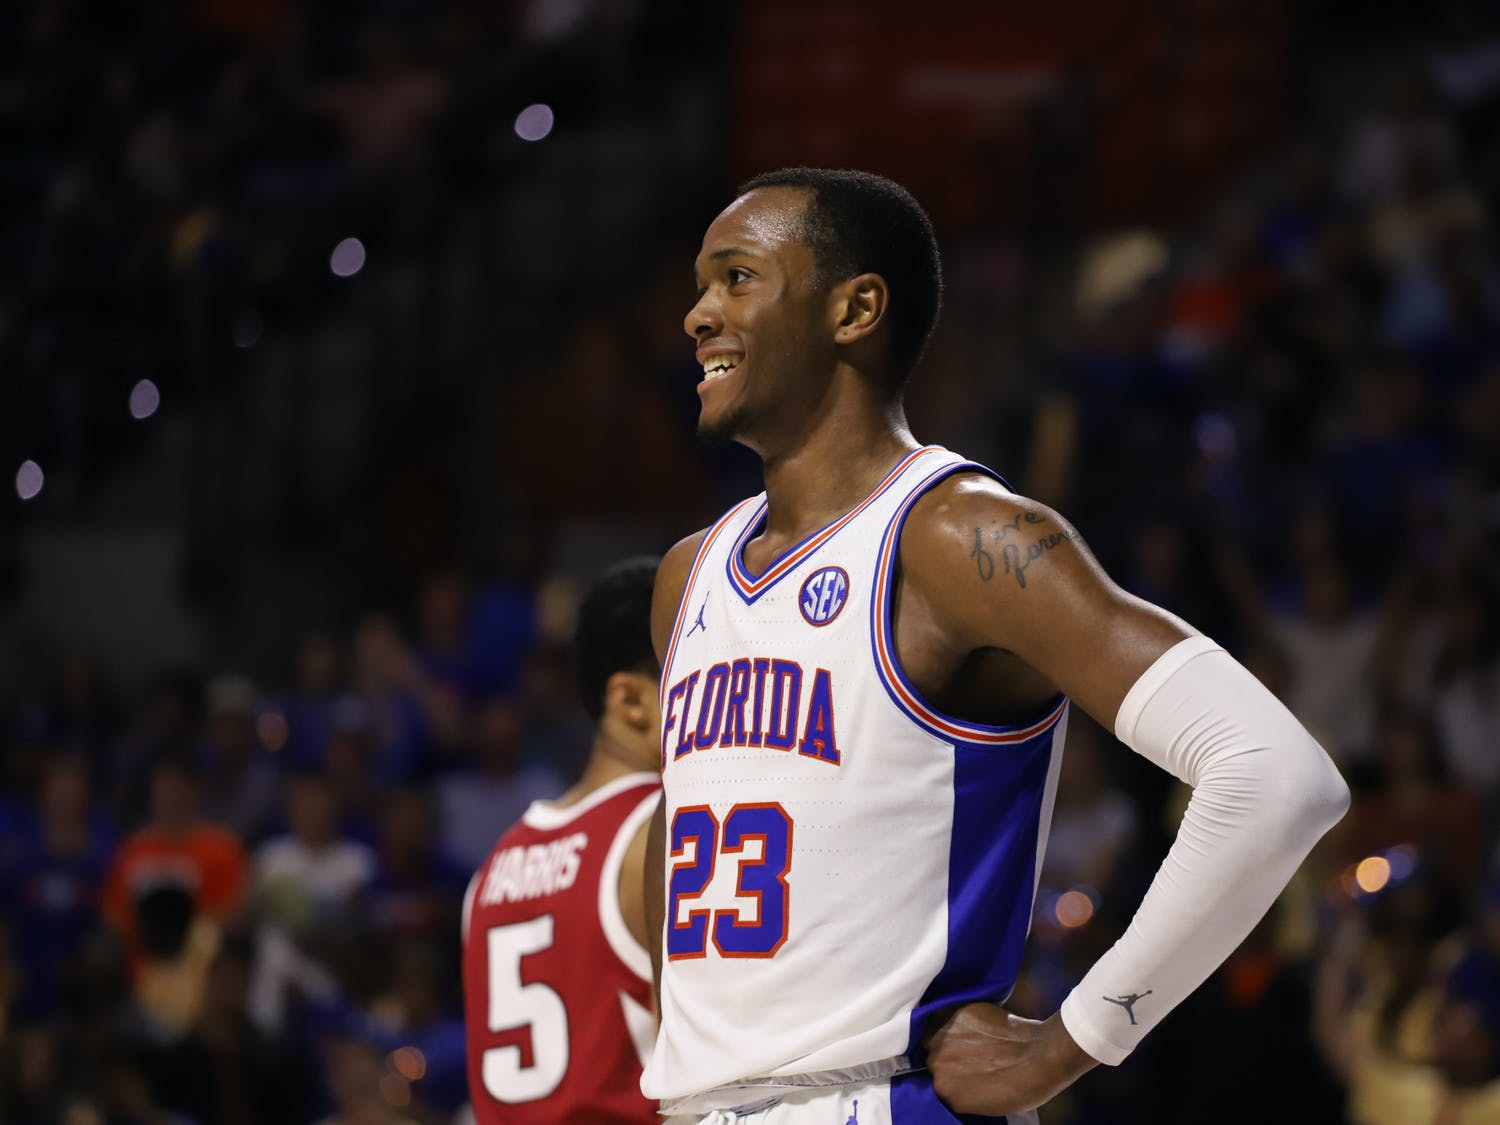 Former Gator Scottie Lewis was drafted by the Charlotte Hornets 56th overall in the 2021 NBA Draft early Friday morning.